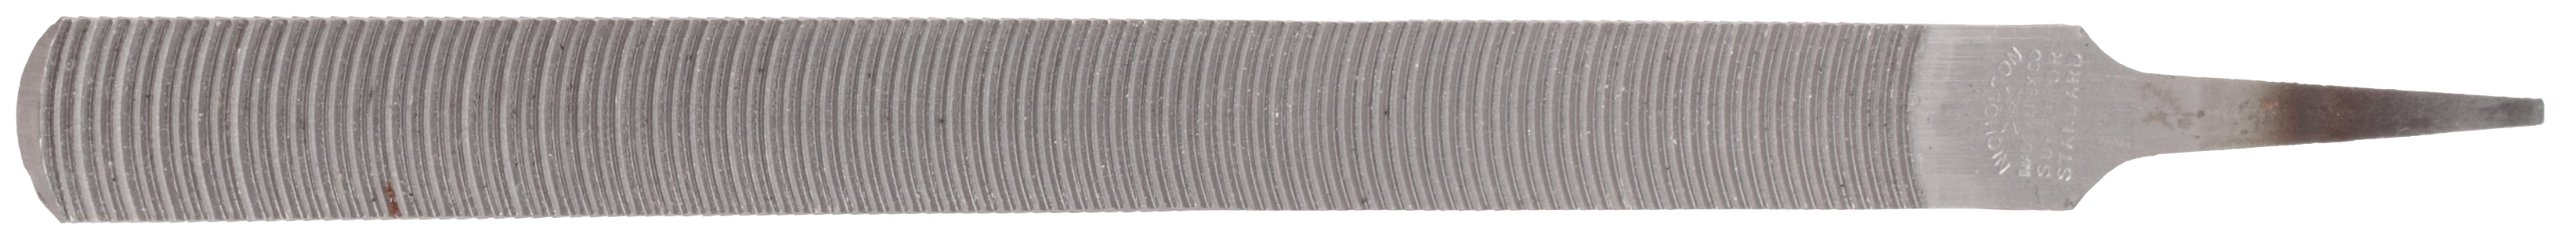 Nicholson Hand File, Standard Pattern, Curved Cut, Half-Round, 8'' Length